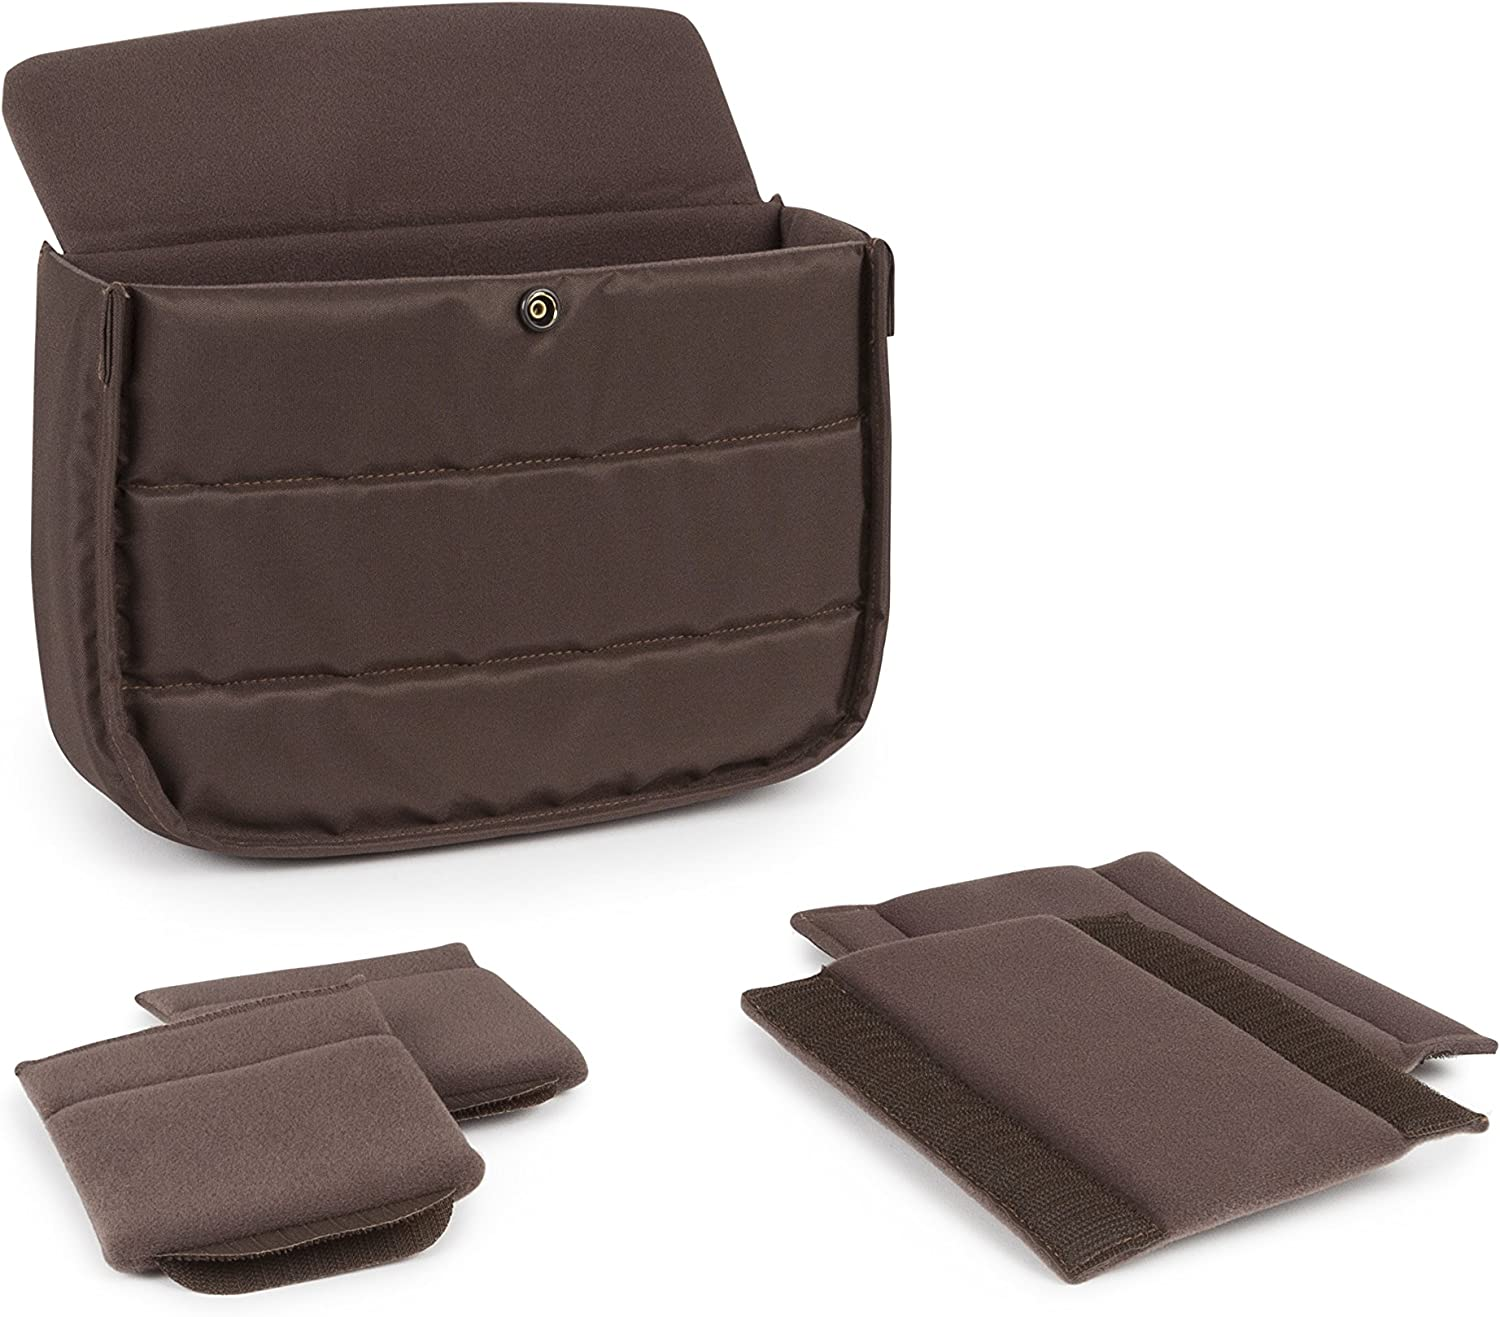 Chocolate Billingham Insert Insert for Camera Bag